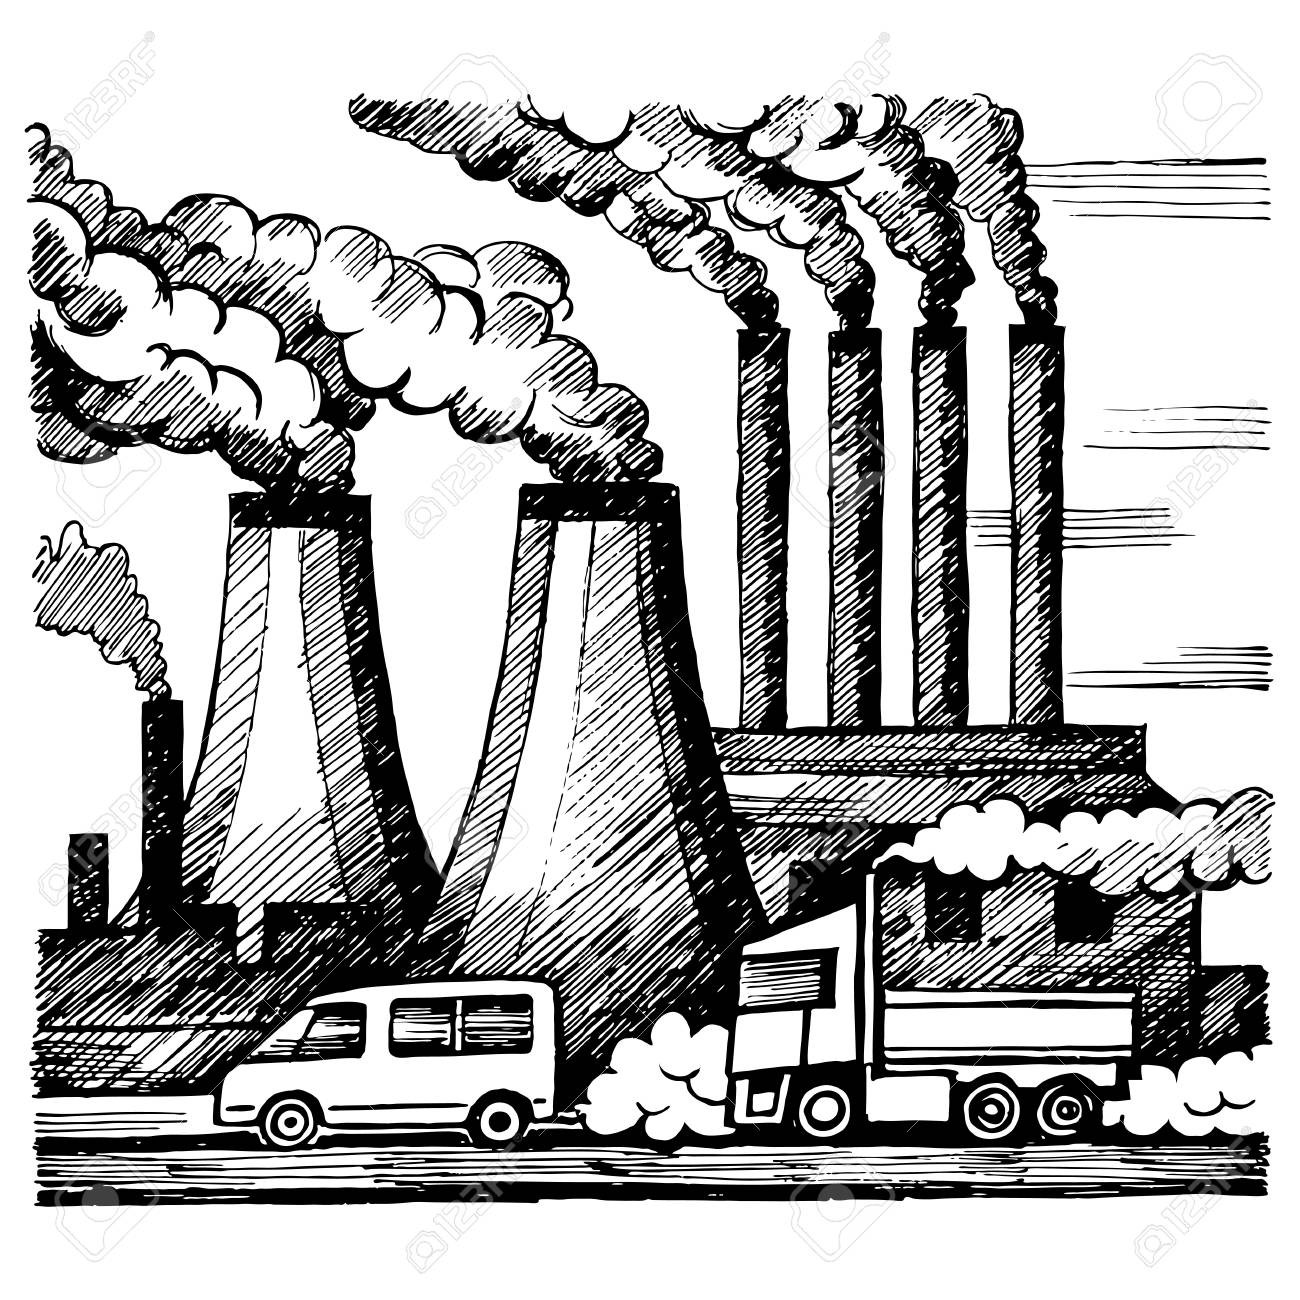 Pollution clipart drawing. Air ohidul me factory